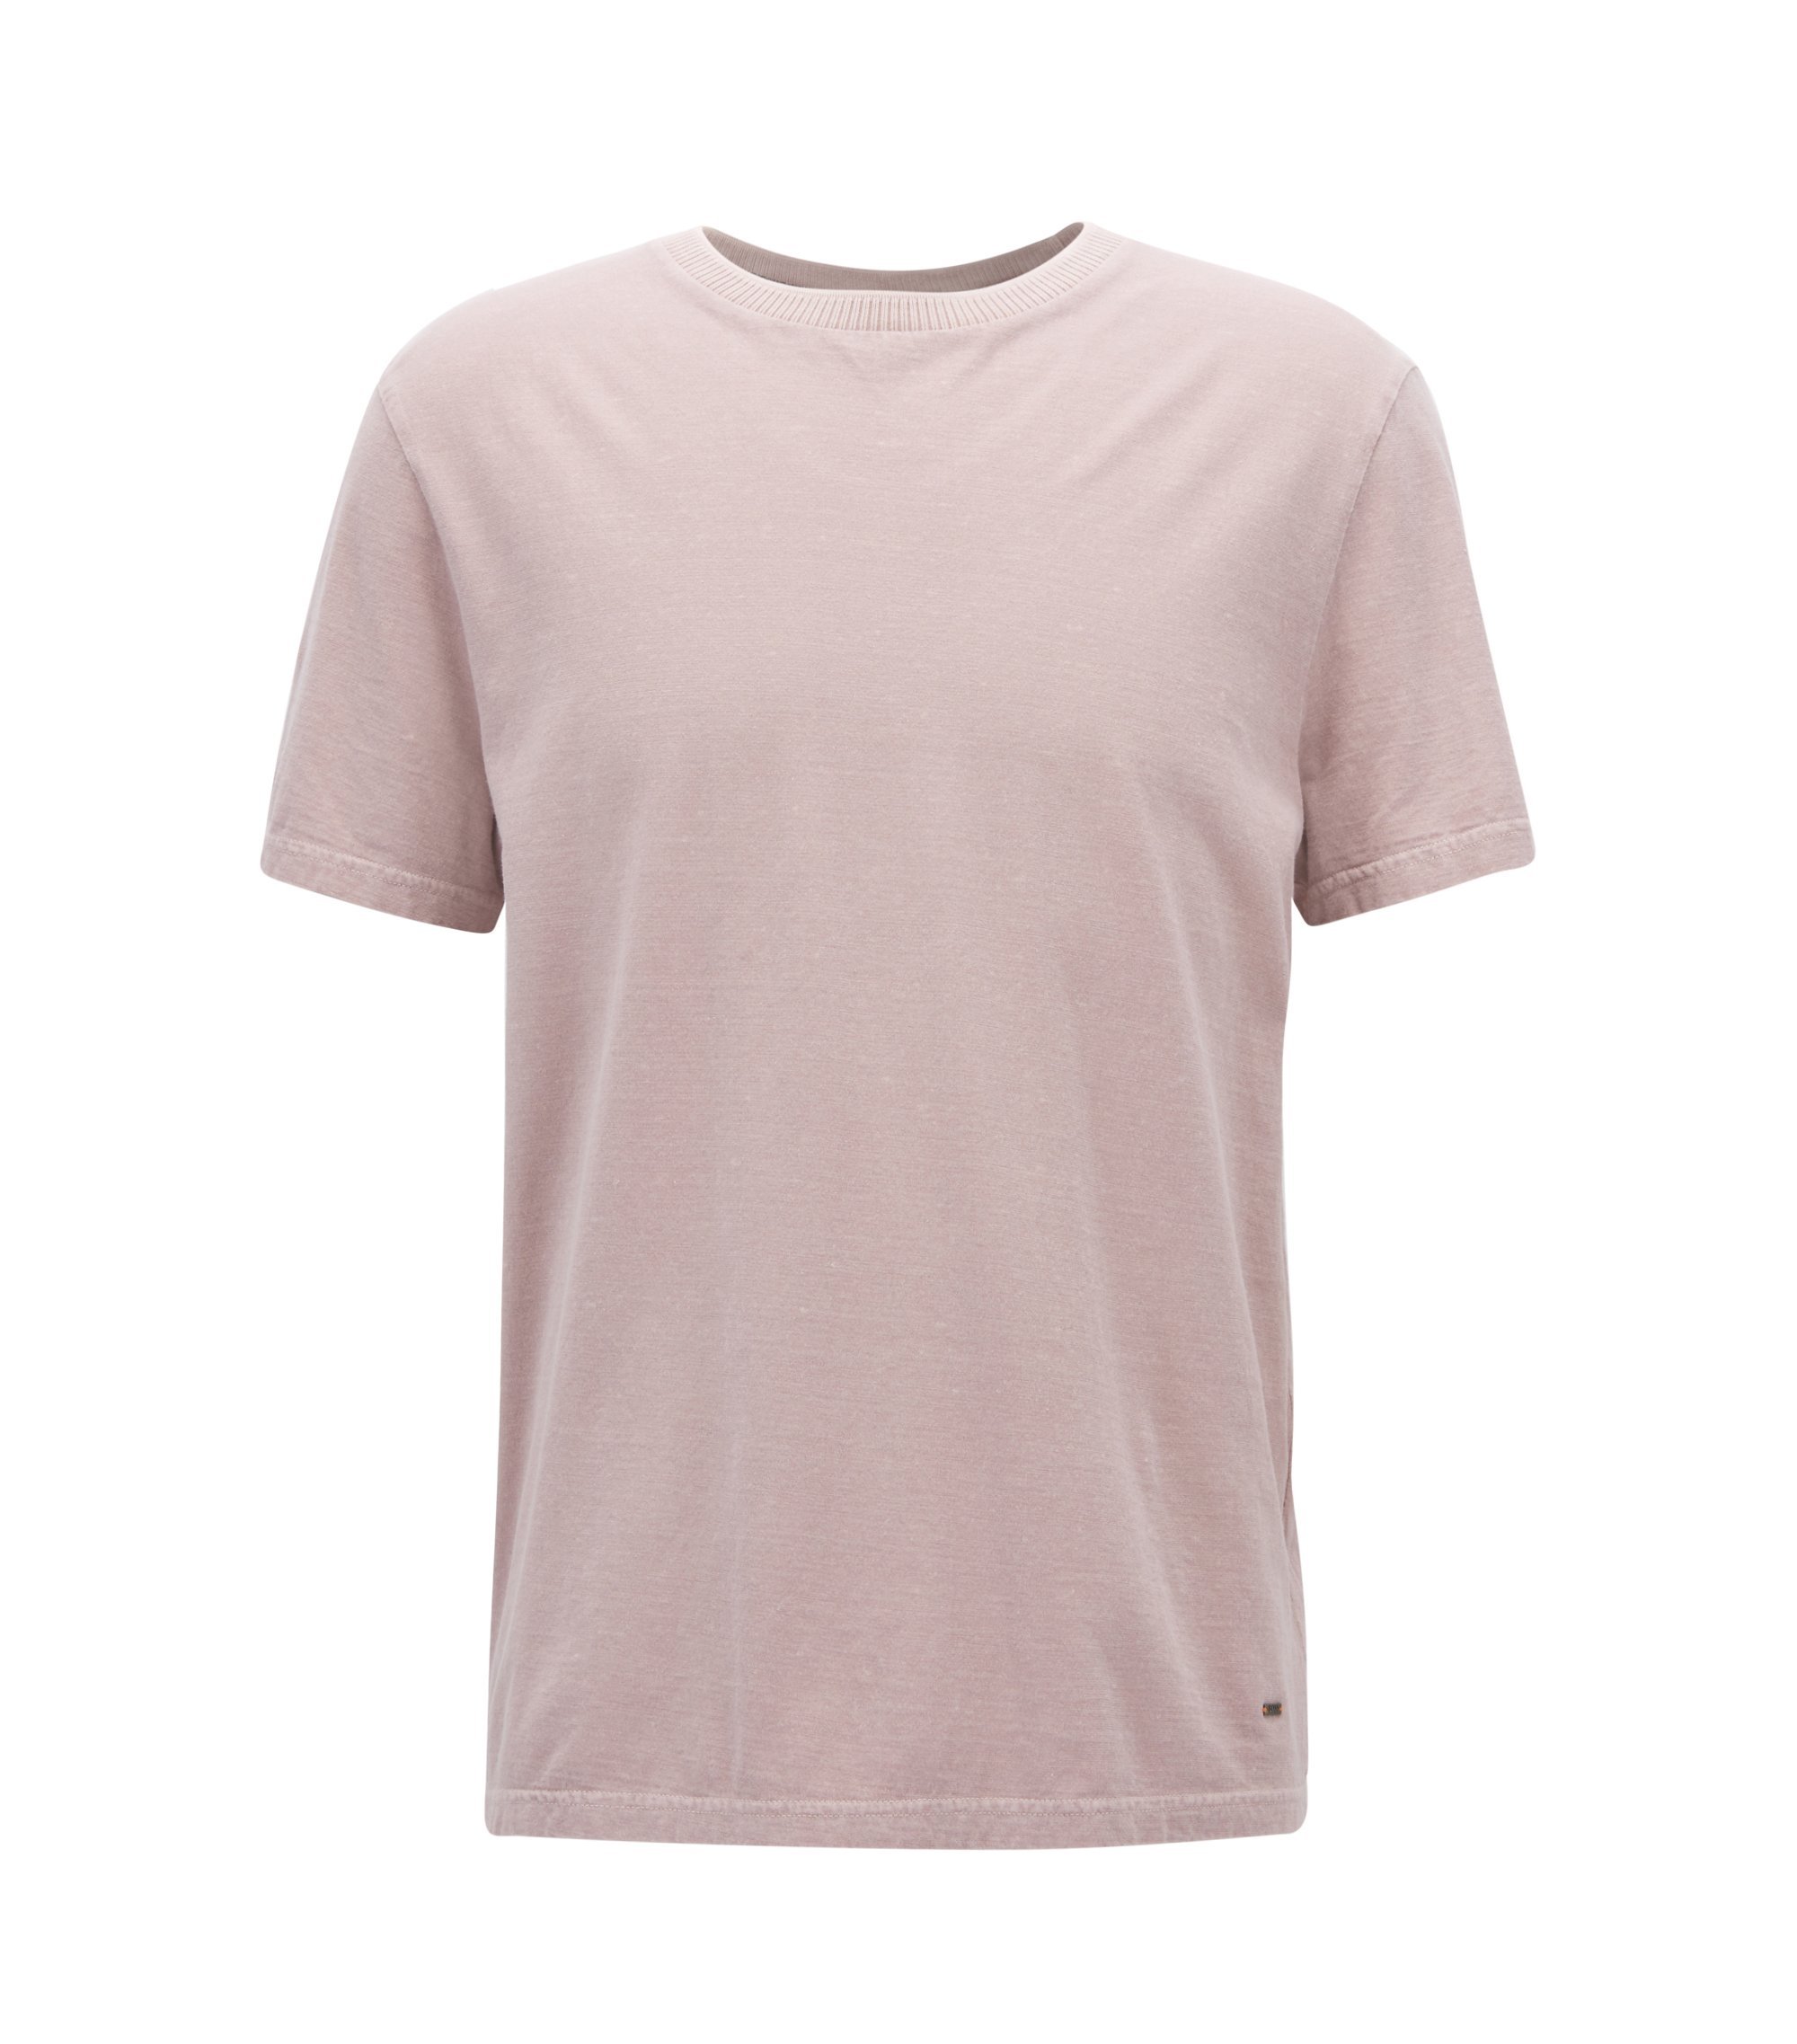 Relaxed-fit T-shirt in a washed slub-cotton blend, light pink